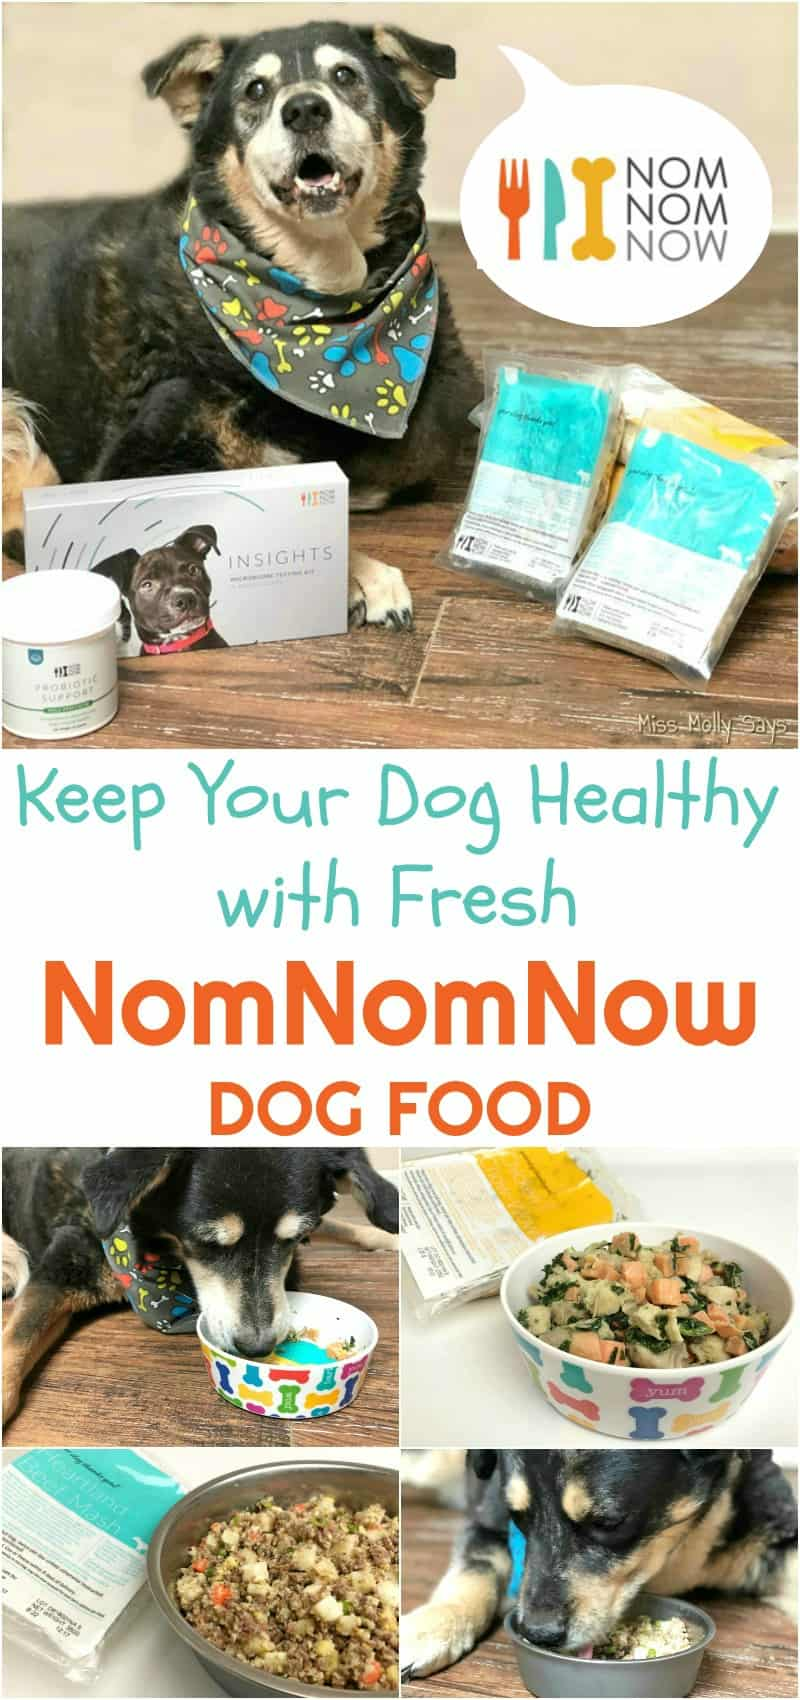 Keep Your Dog Healthy with Fresh NomNomNow Dog Food